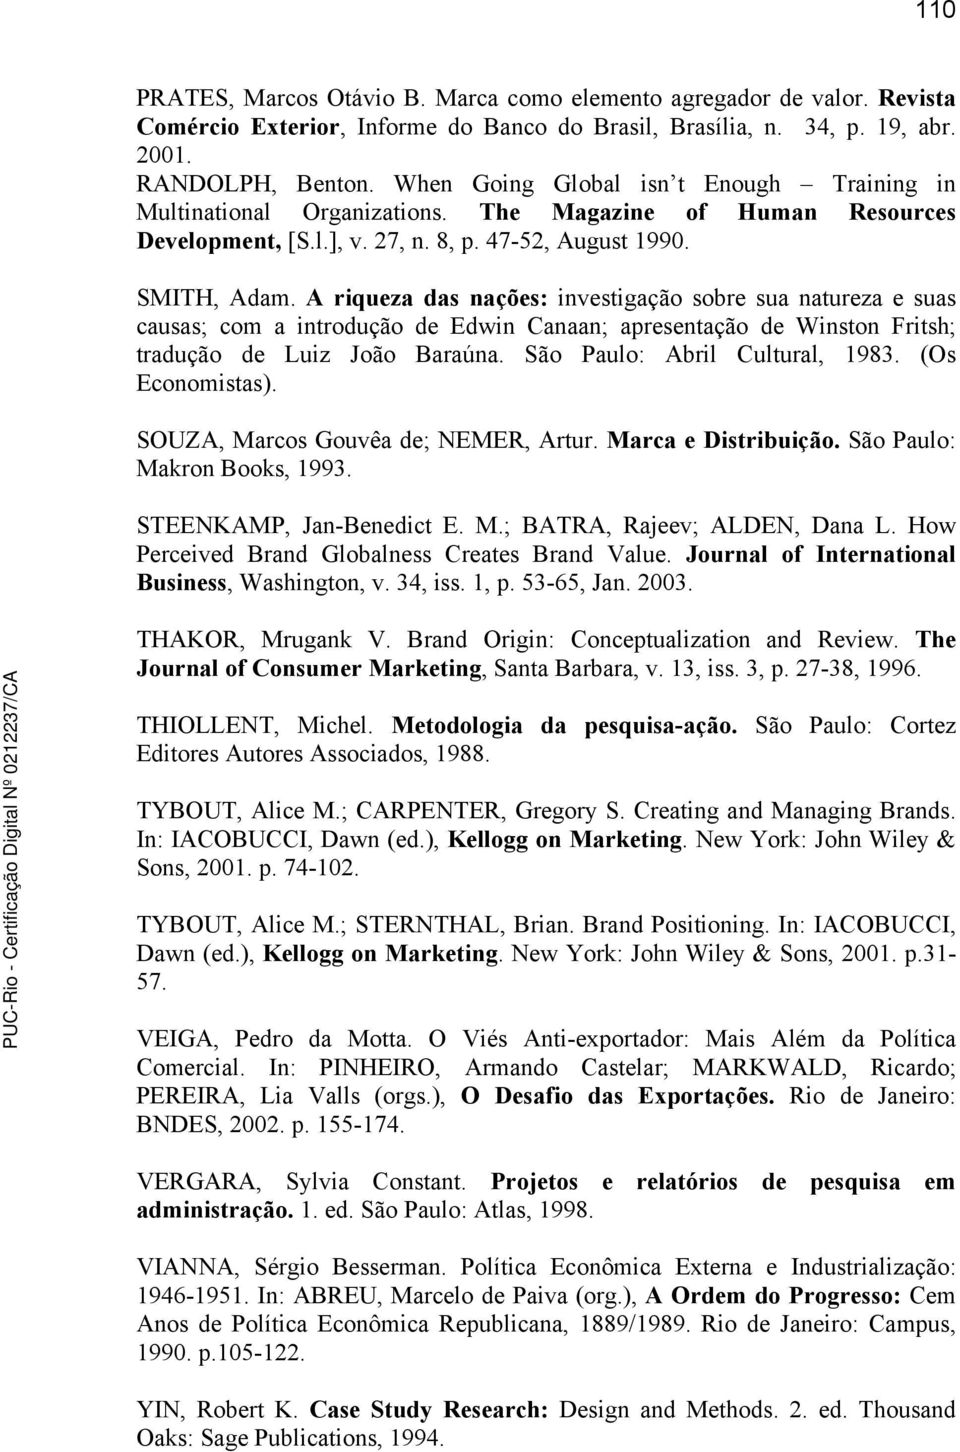 yin robert k 1989 case study research design and methods Perhaps a majority of researchers doing casework call their studies by some  other name howard  least as i see it, case study method has been too little  honored as the intrin sic study of a valued  (1980), stephen kemmis (1980),  and robert yin (1989) are among those who have  carter, k (1993) the  place of story.